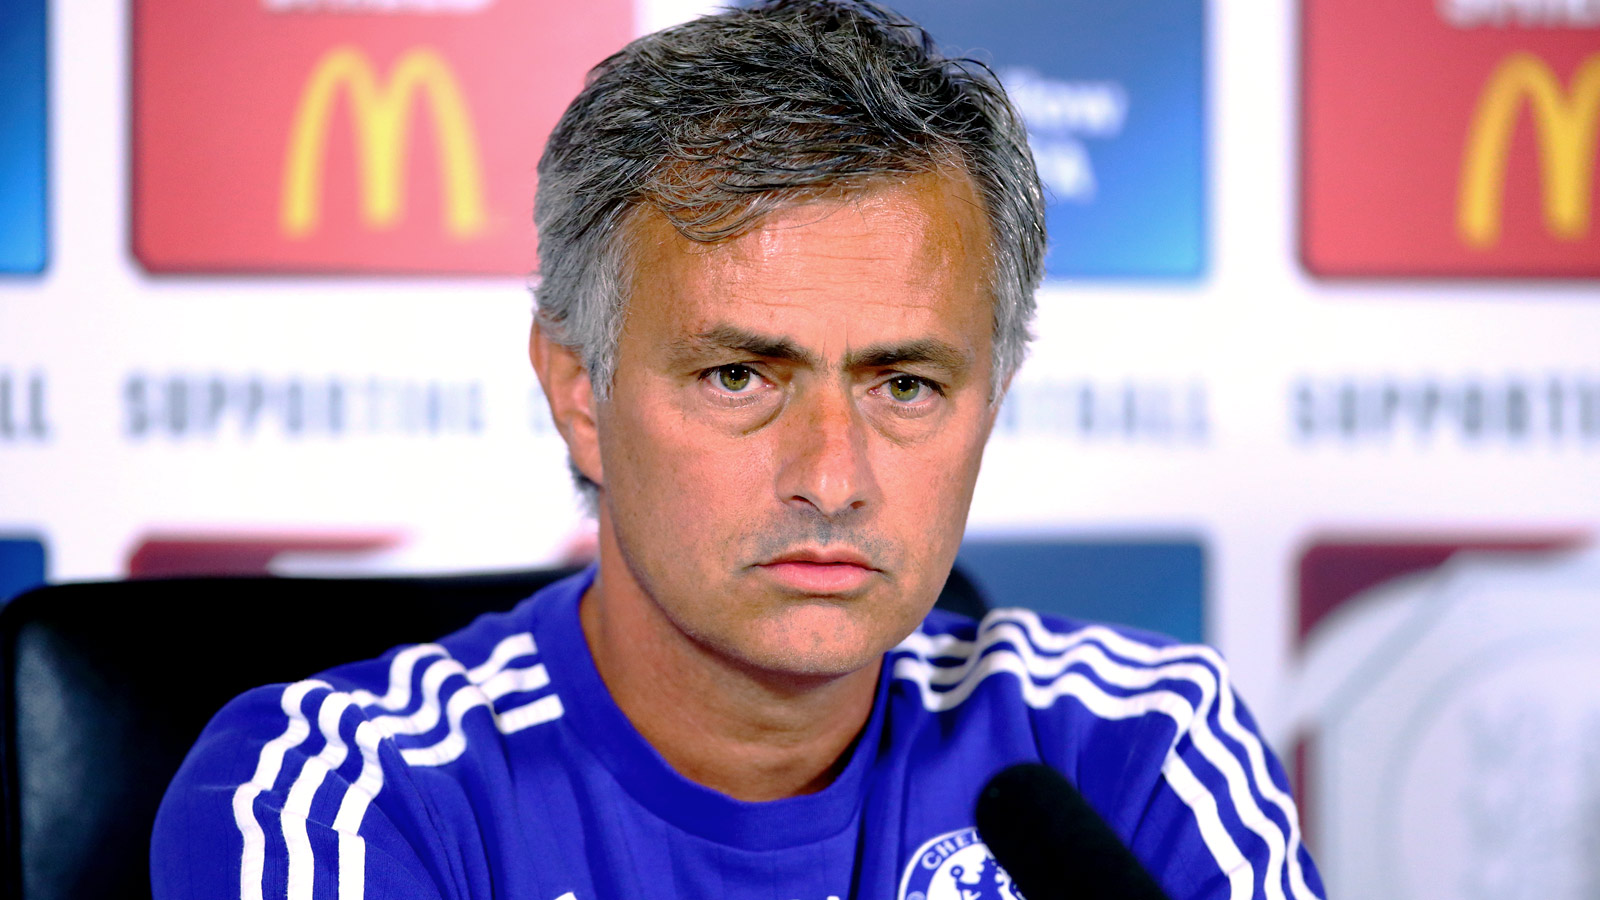 Chelsea boss Mourinho hopes to continue managing into his 70s